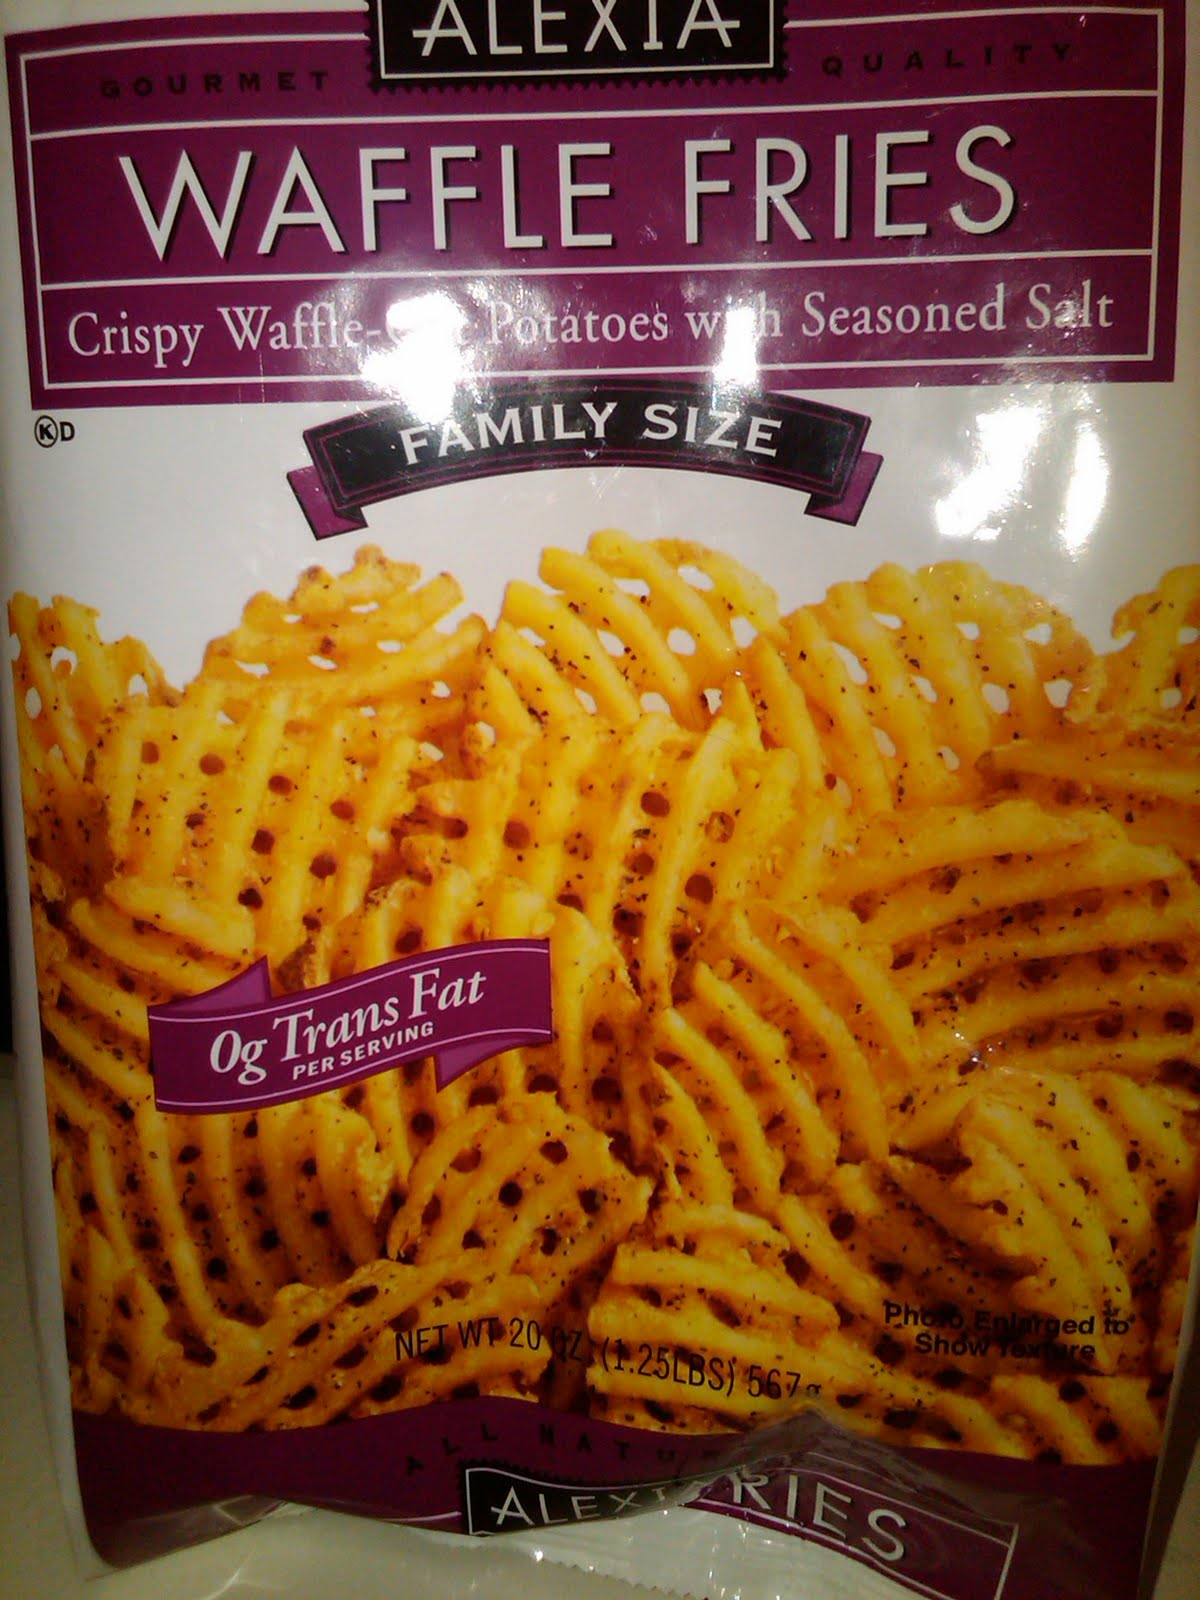 French Fry Diary: French Fry Diary 104: Alexia Waffle Fries